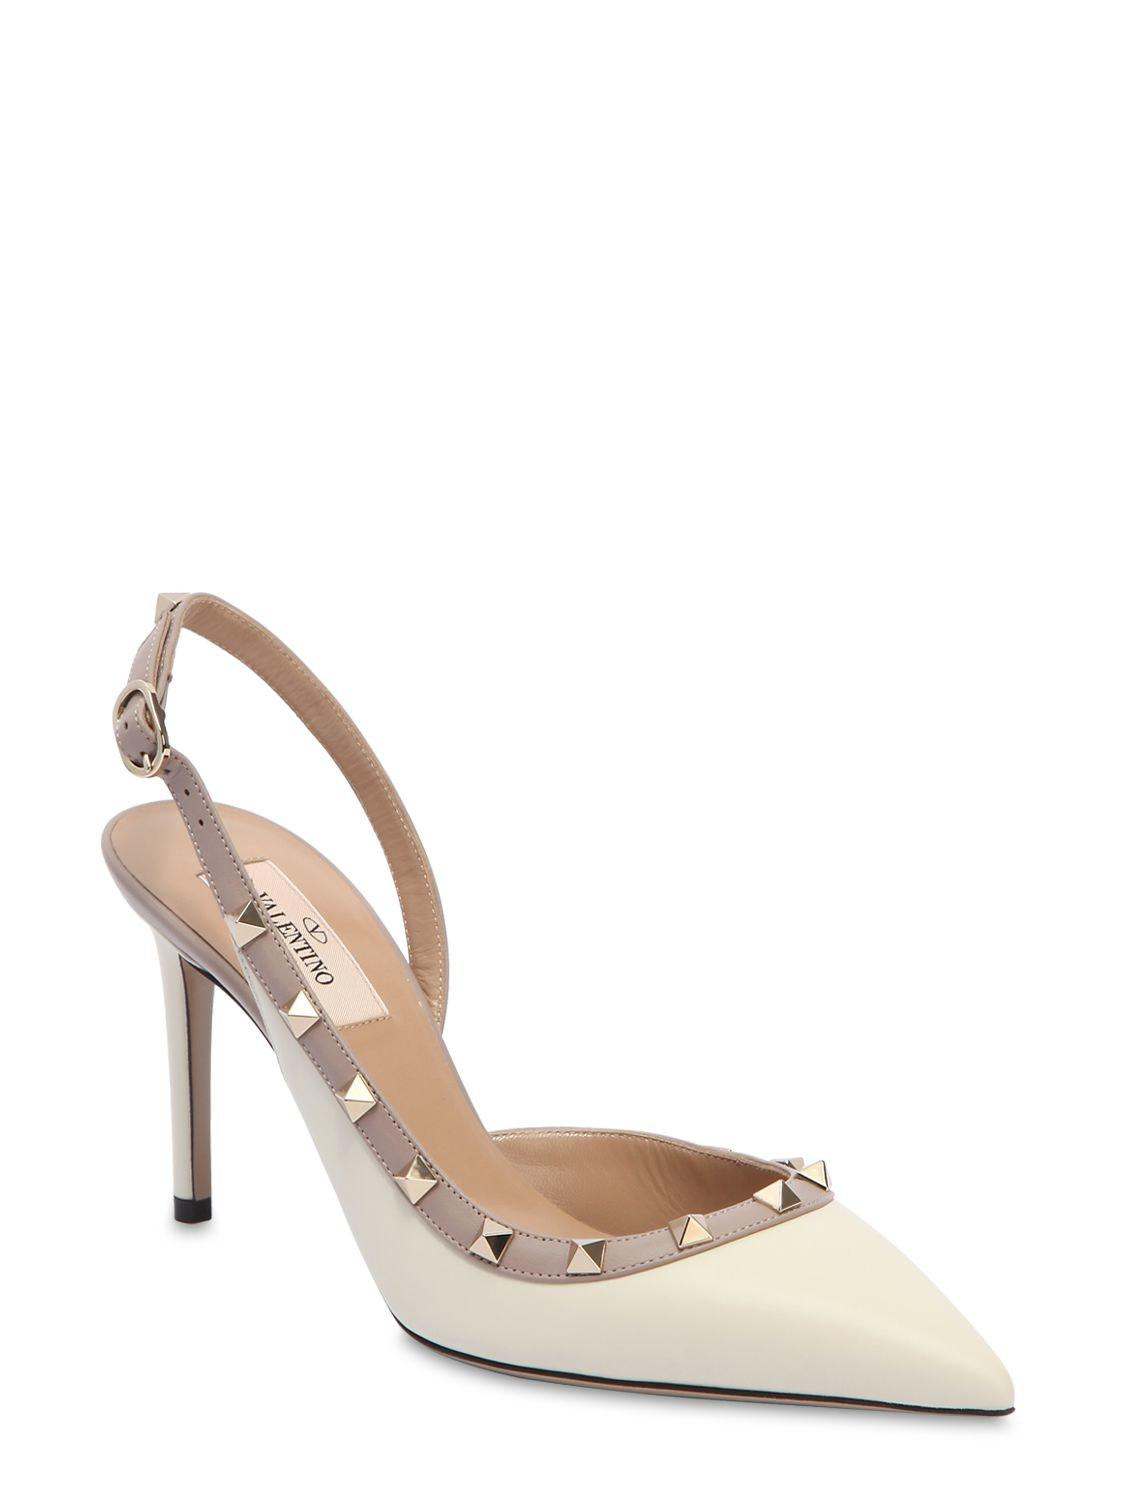 35a517acfbd2 Lyst - Valentino 85mm Rockstud Leather Slingback Pumps in White